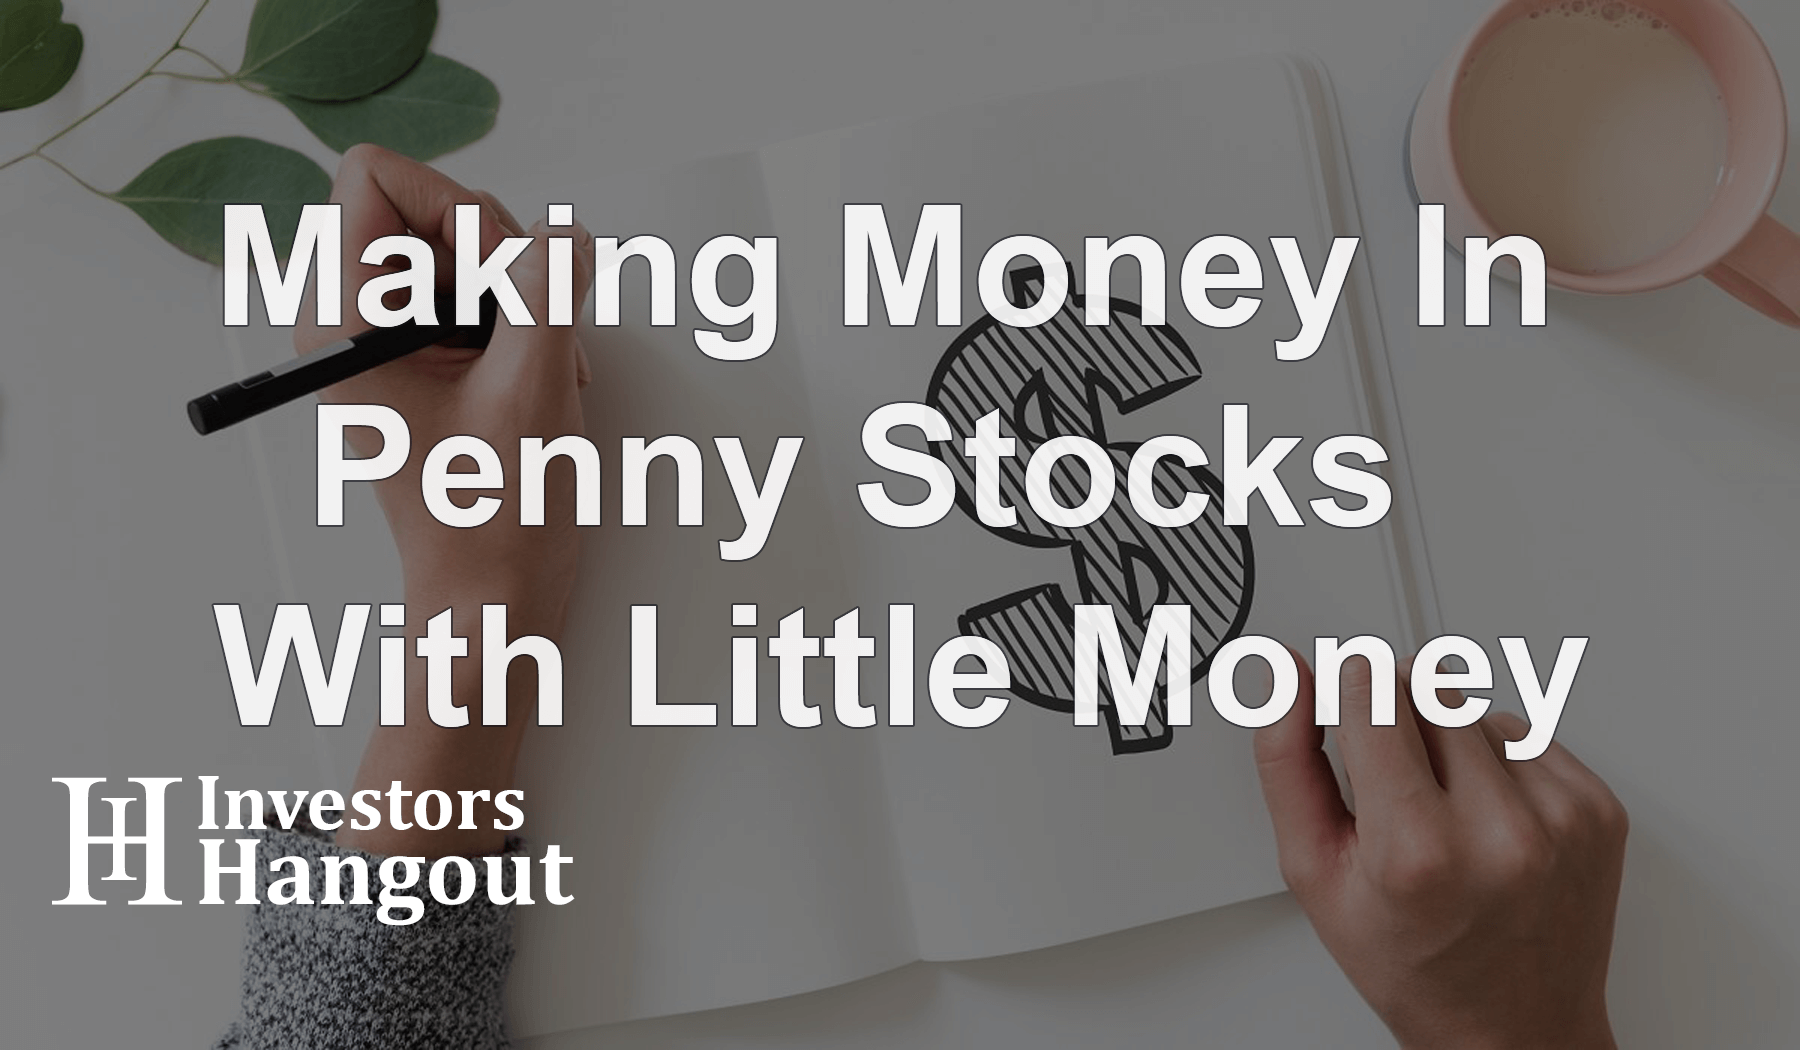 Making Money In Penny Stocks With Little Money